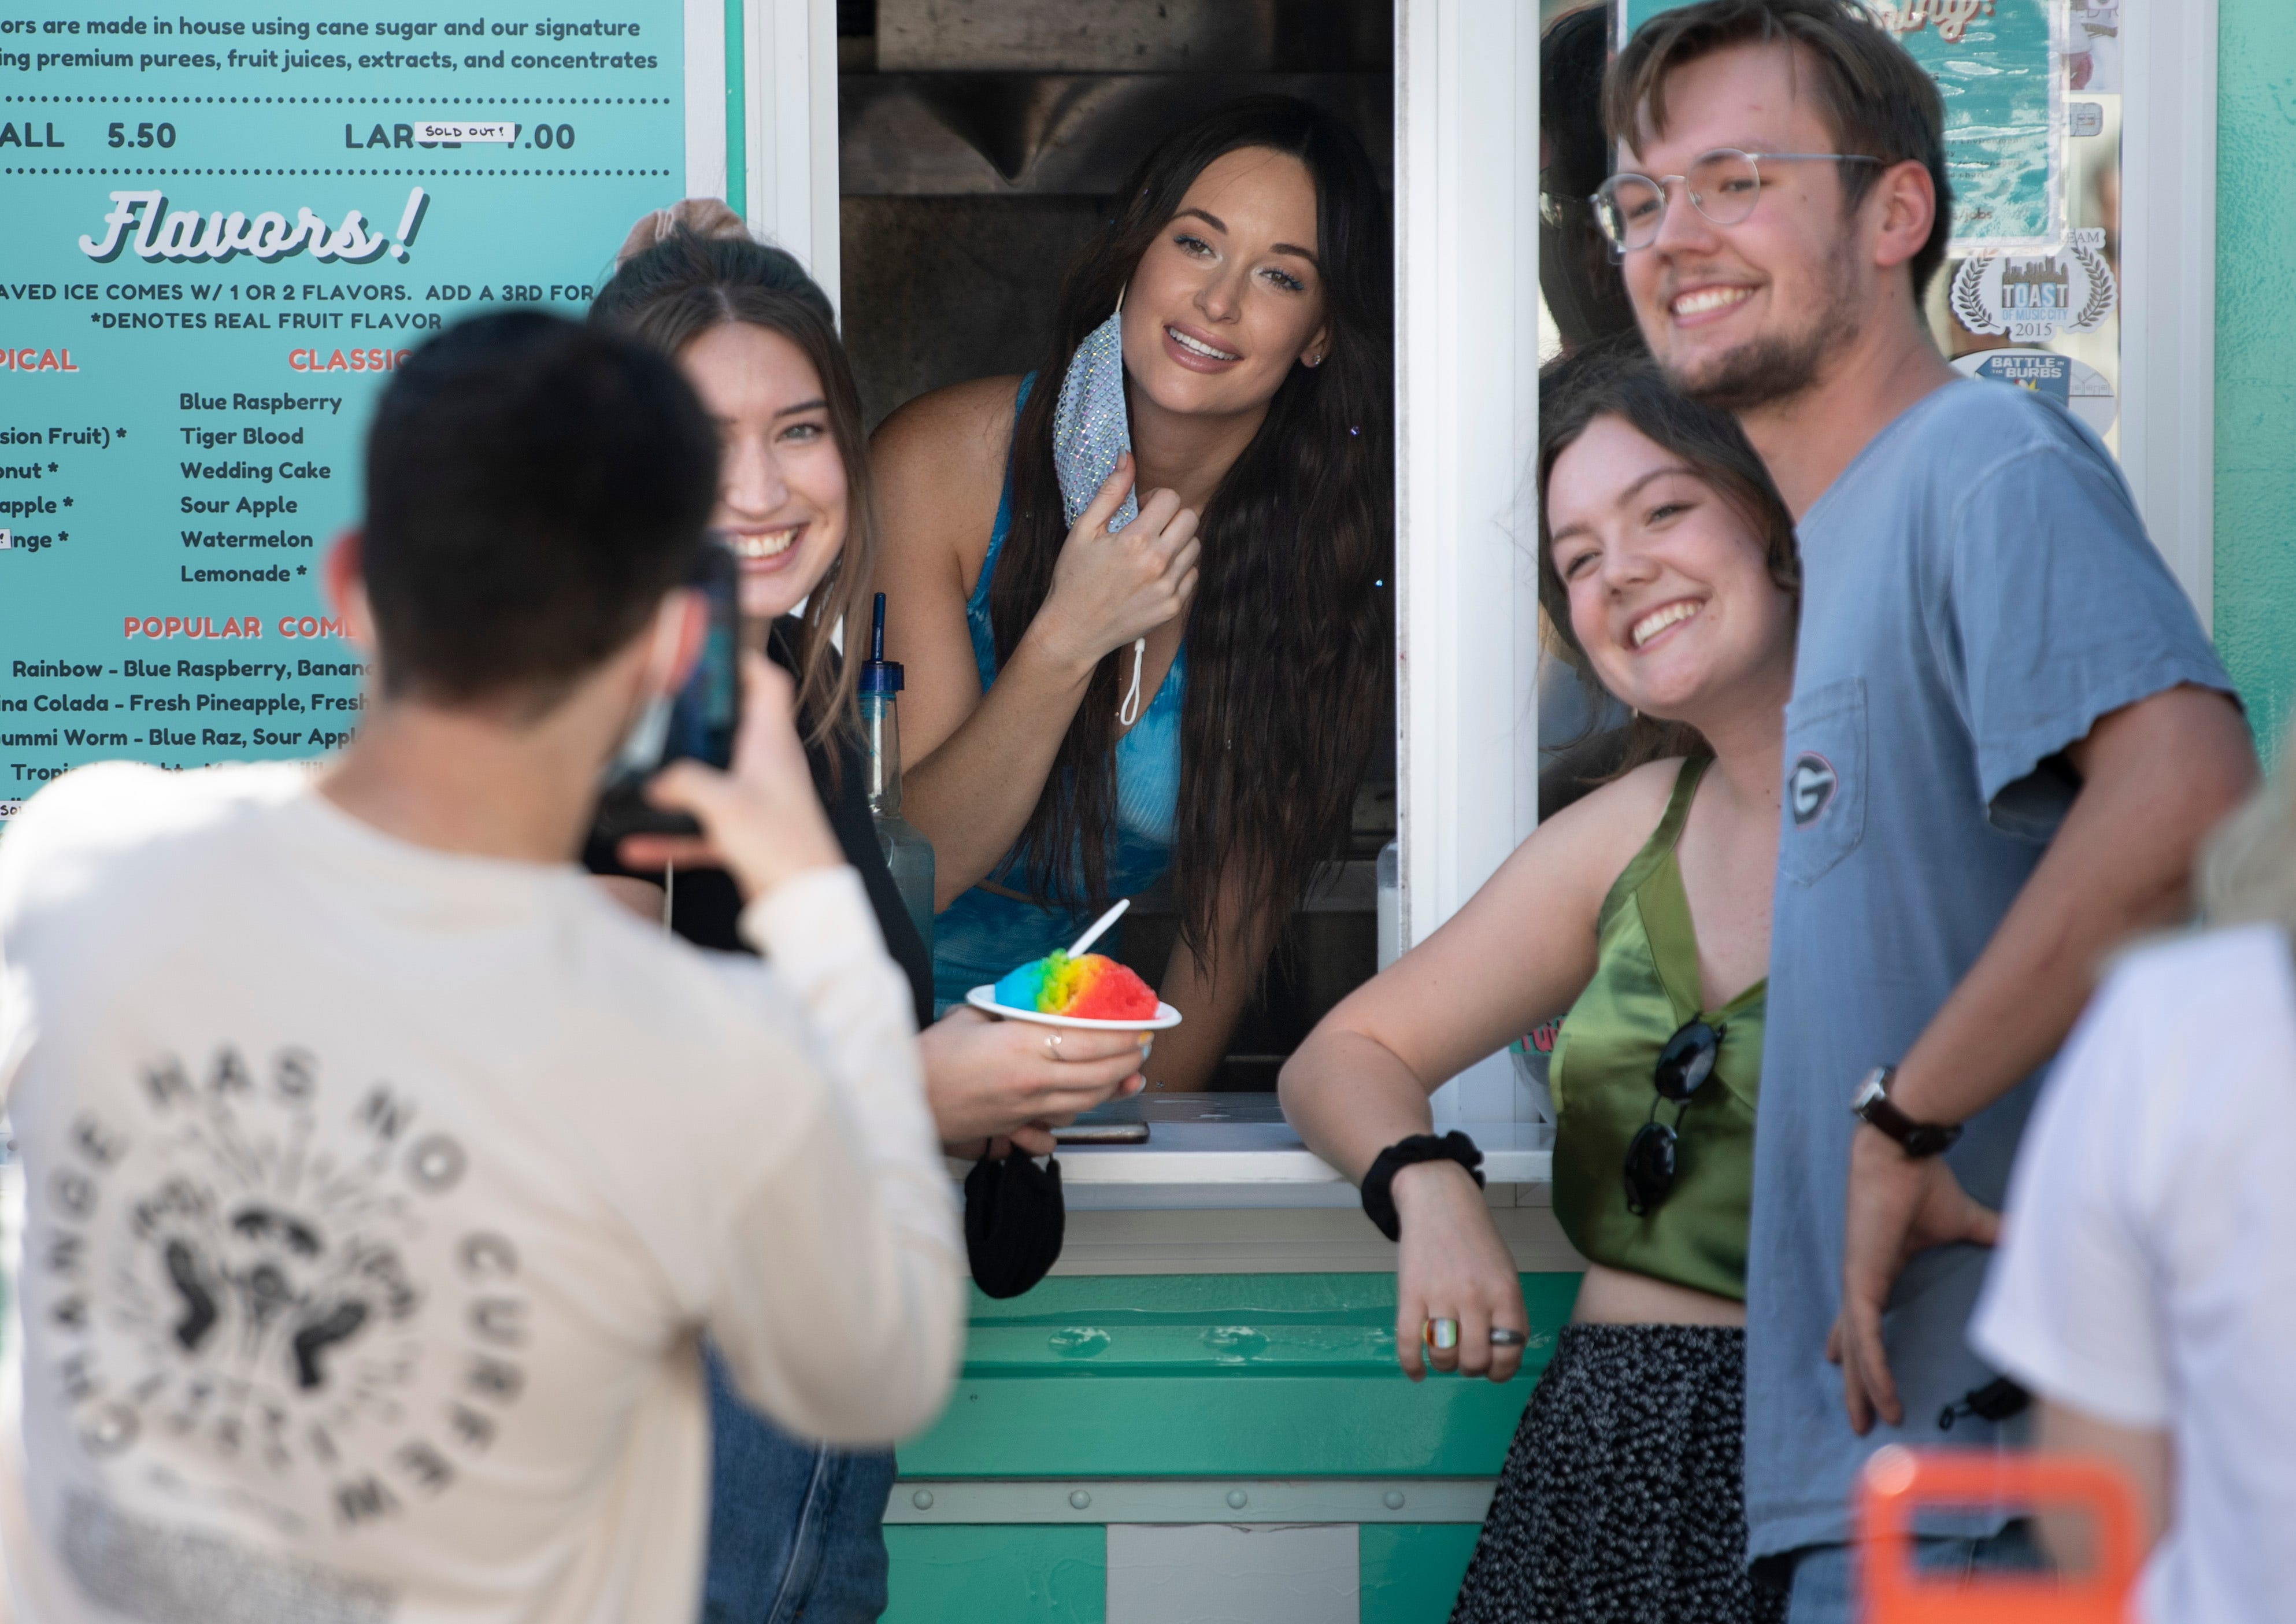 Kacey Musgraves fulfills  lifelong dream  to work at Nashville shaved ice stand after Instagram DM